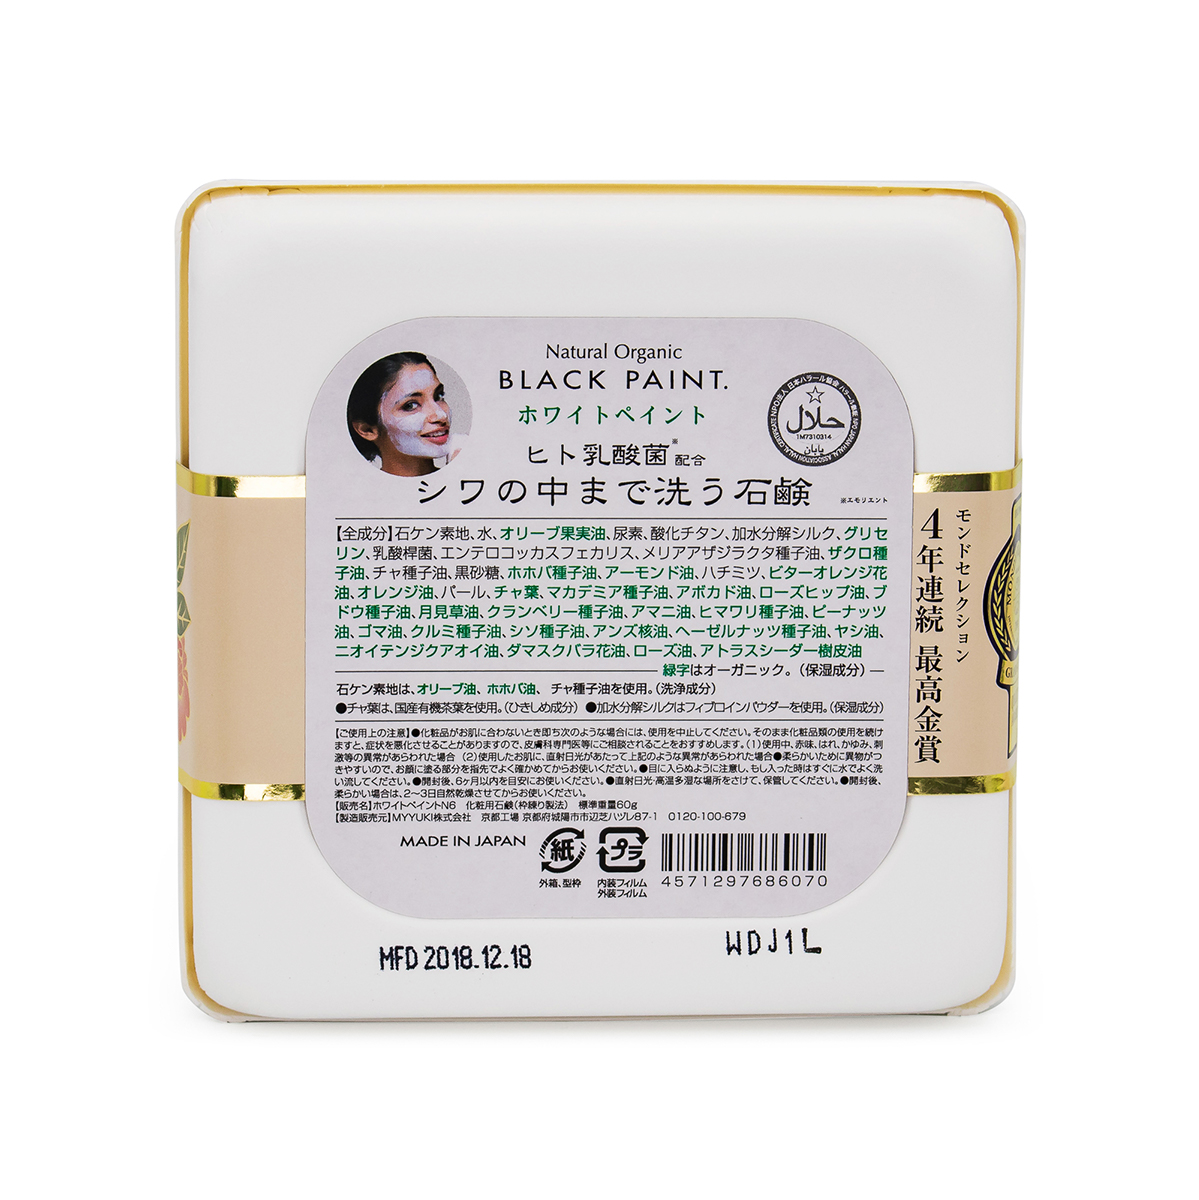 White Paint Soap 60g with Human Microbiome - back